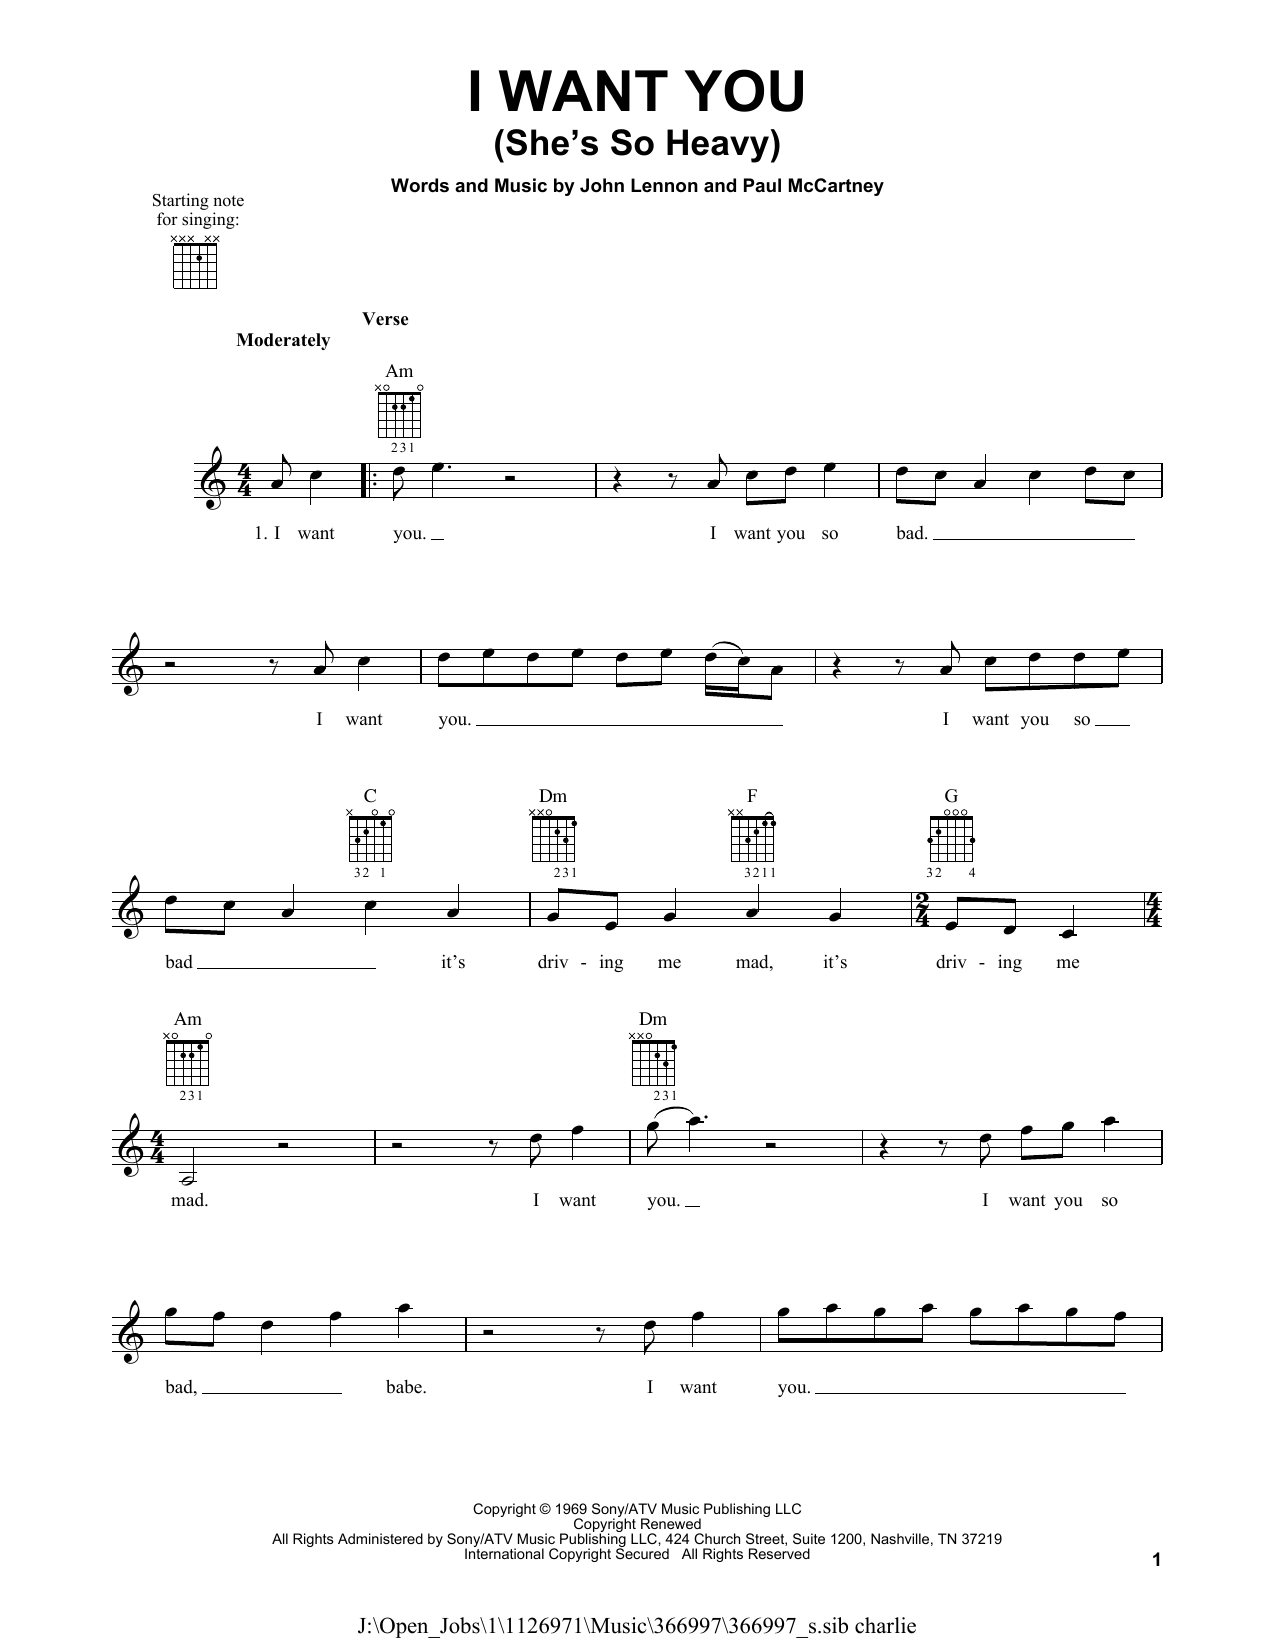 I Want You (She's So Heavy) Sheet Music